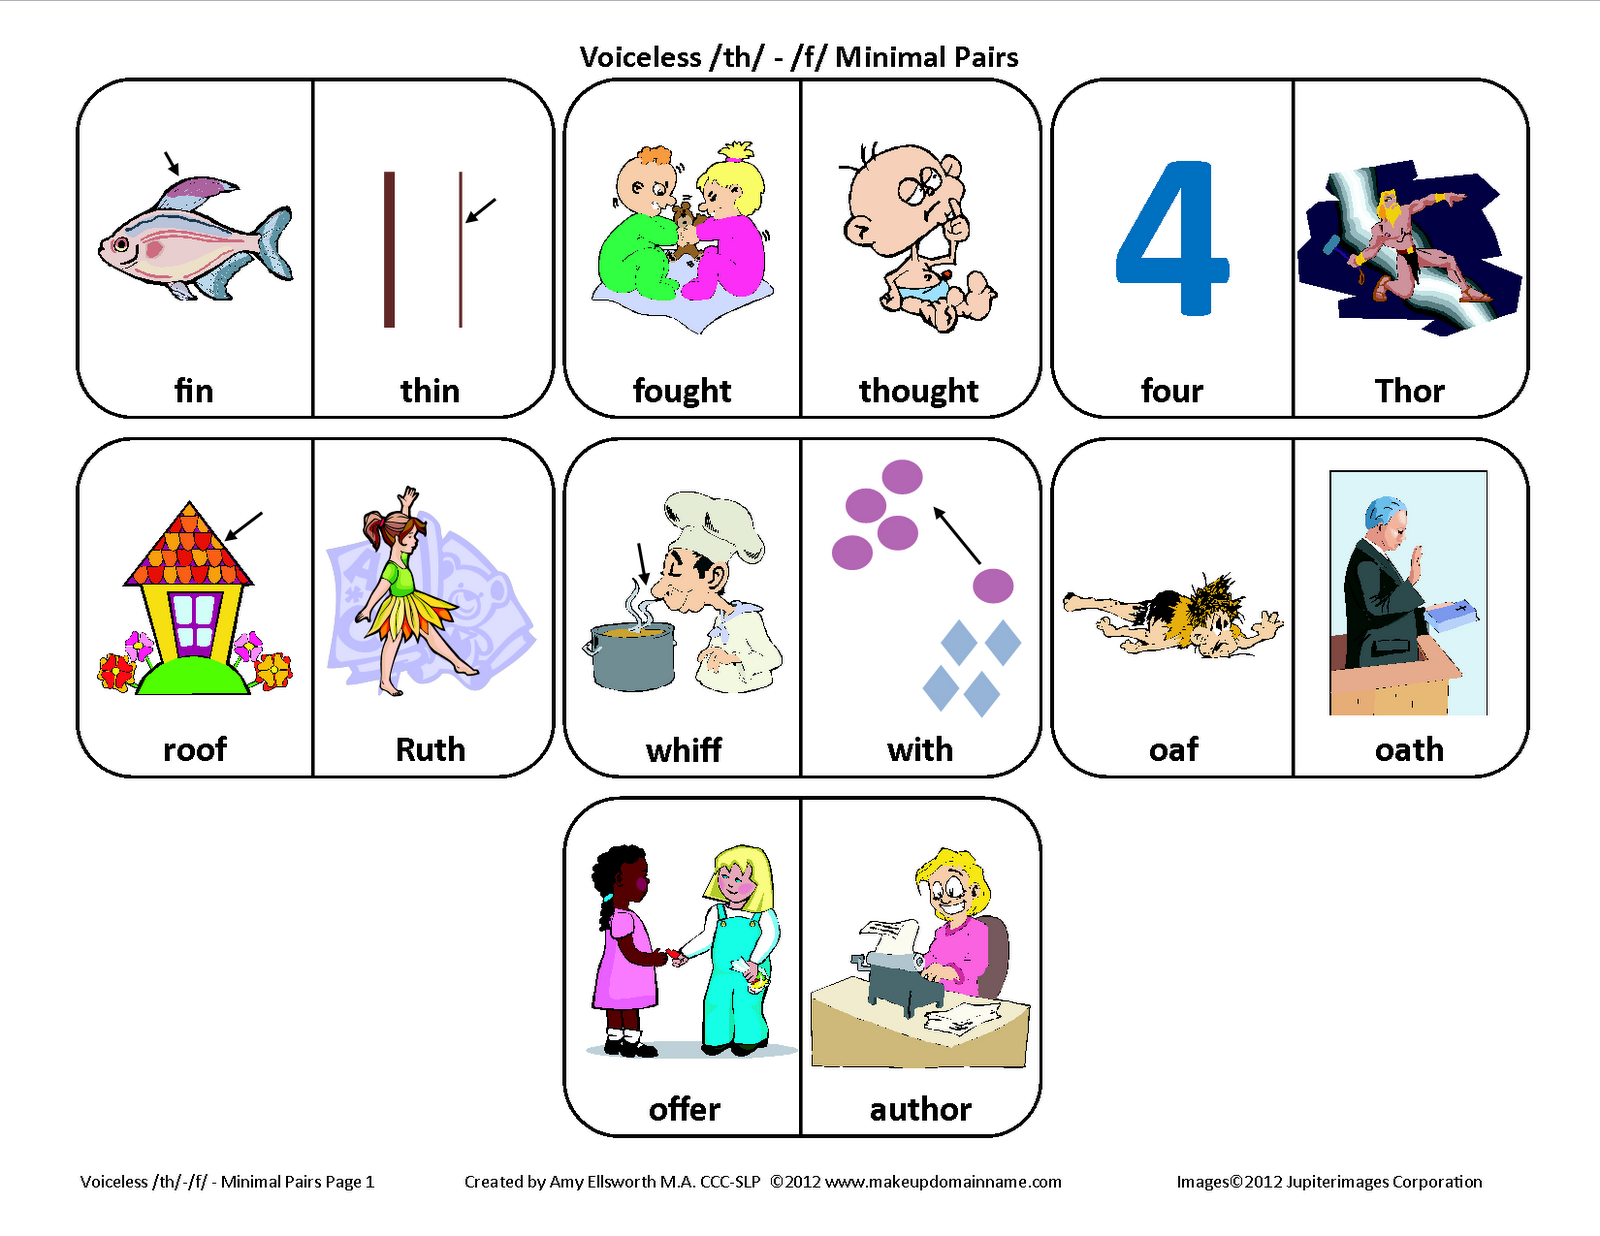 worksheet Minimal Pairs Worksheets 78 best images about minimal pairs on pinterest bingo student centered resources and speech therapy